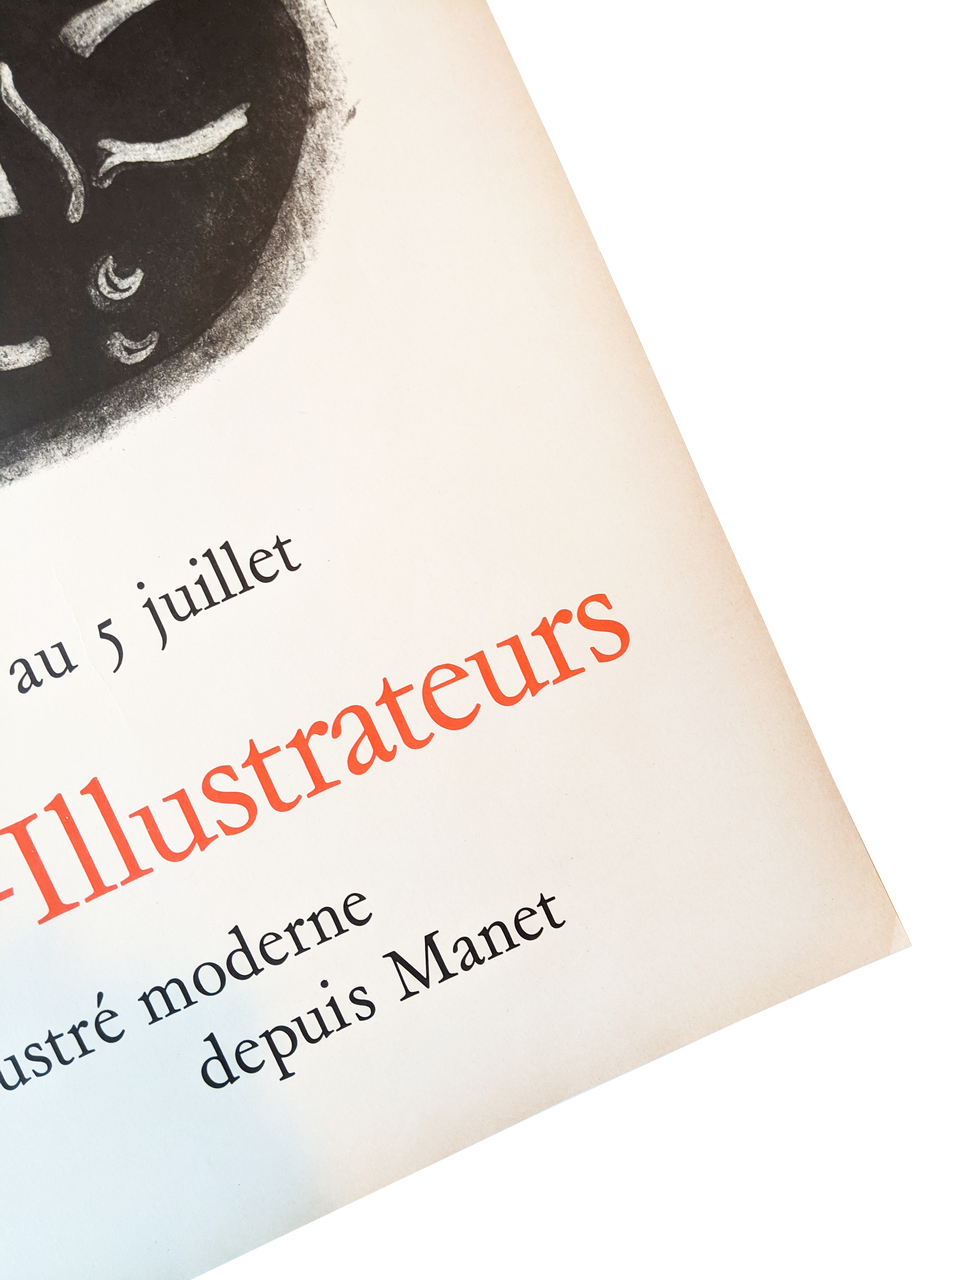 Exhibition Poster Maeght, 1960 - Peintres-Illustrateurs